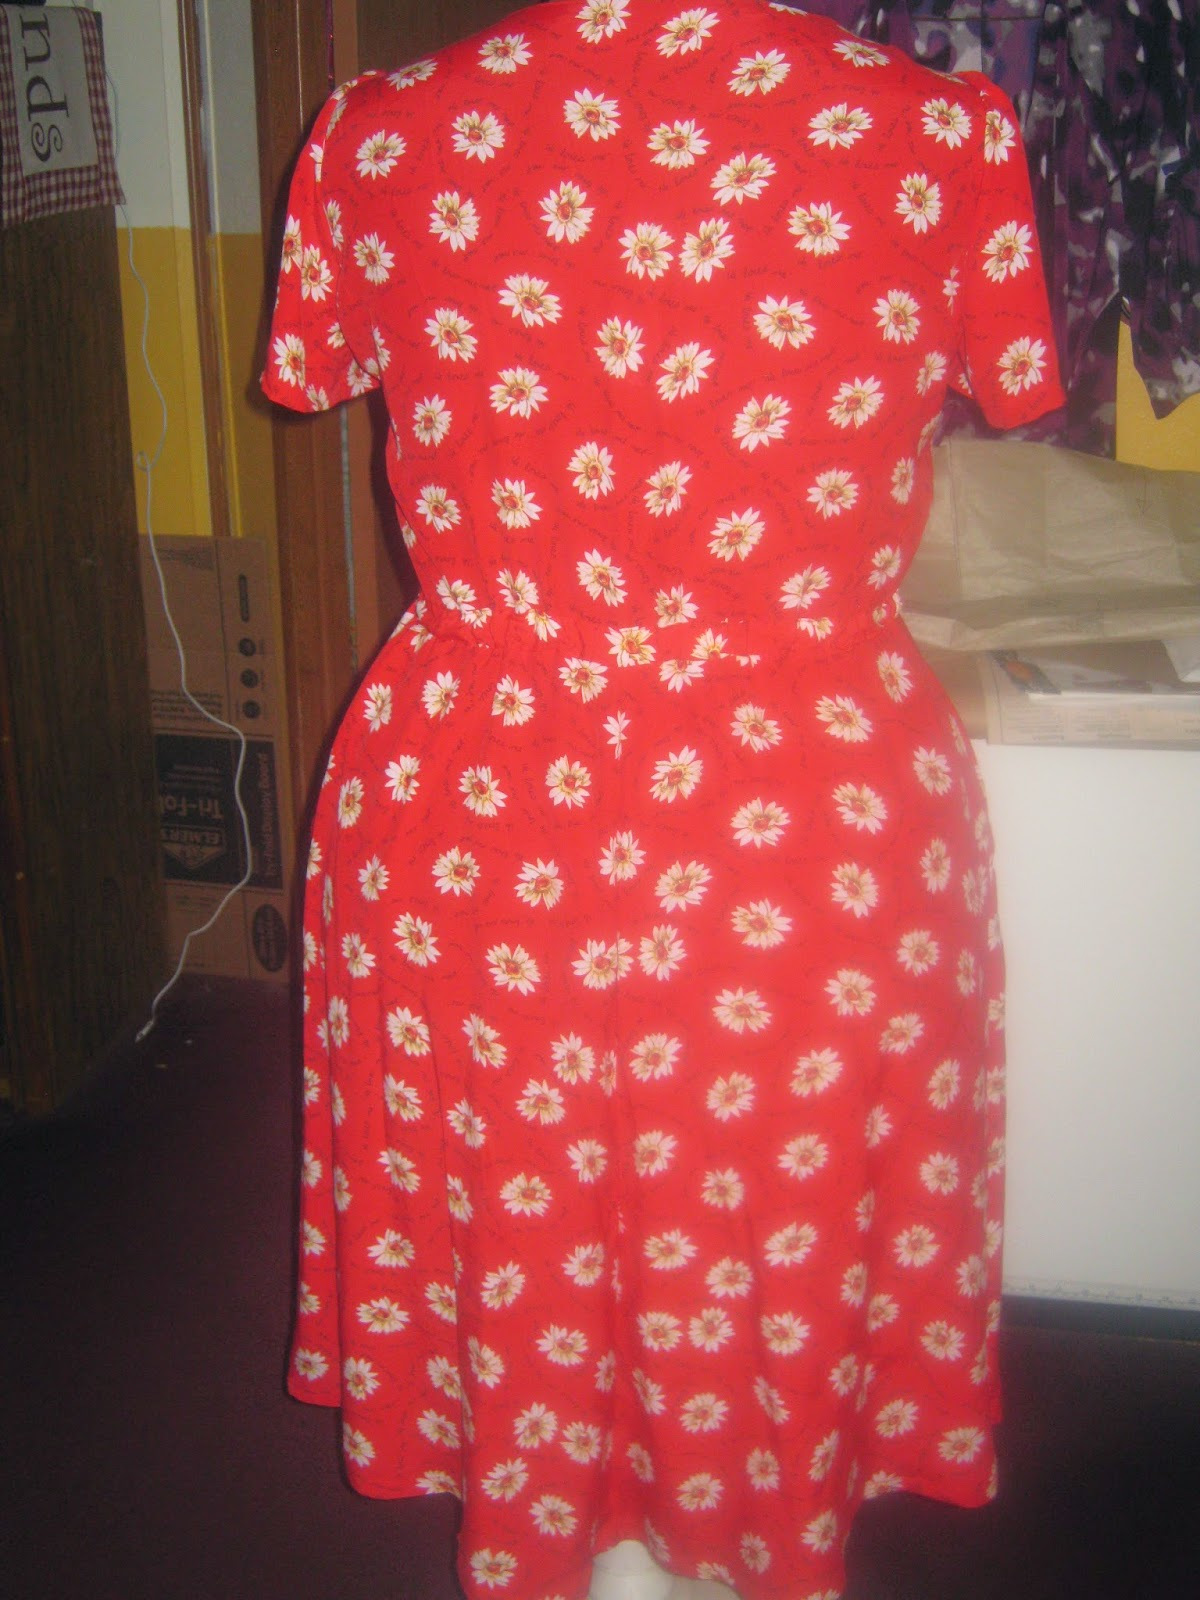 New Look 6653 Dress Back View Daisies on Red www.sewplus.blogspot.com